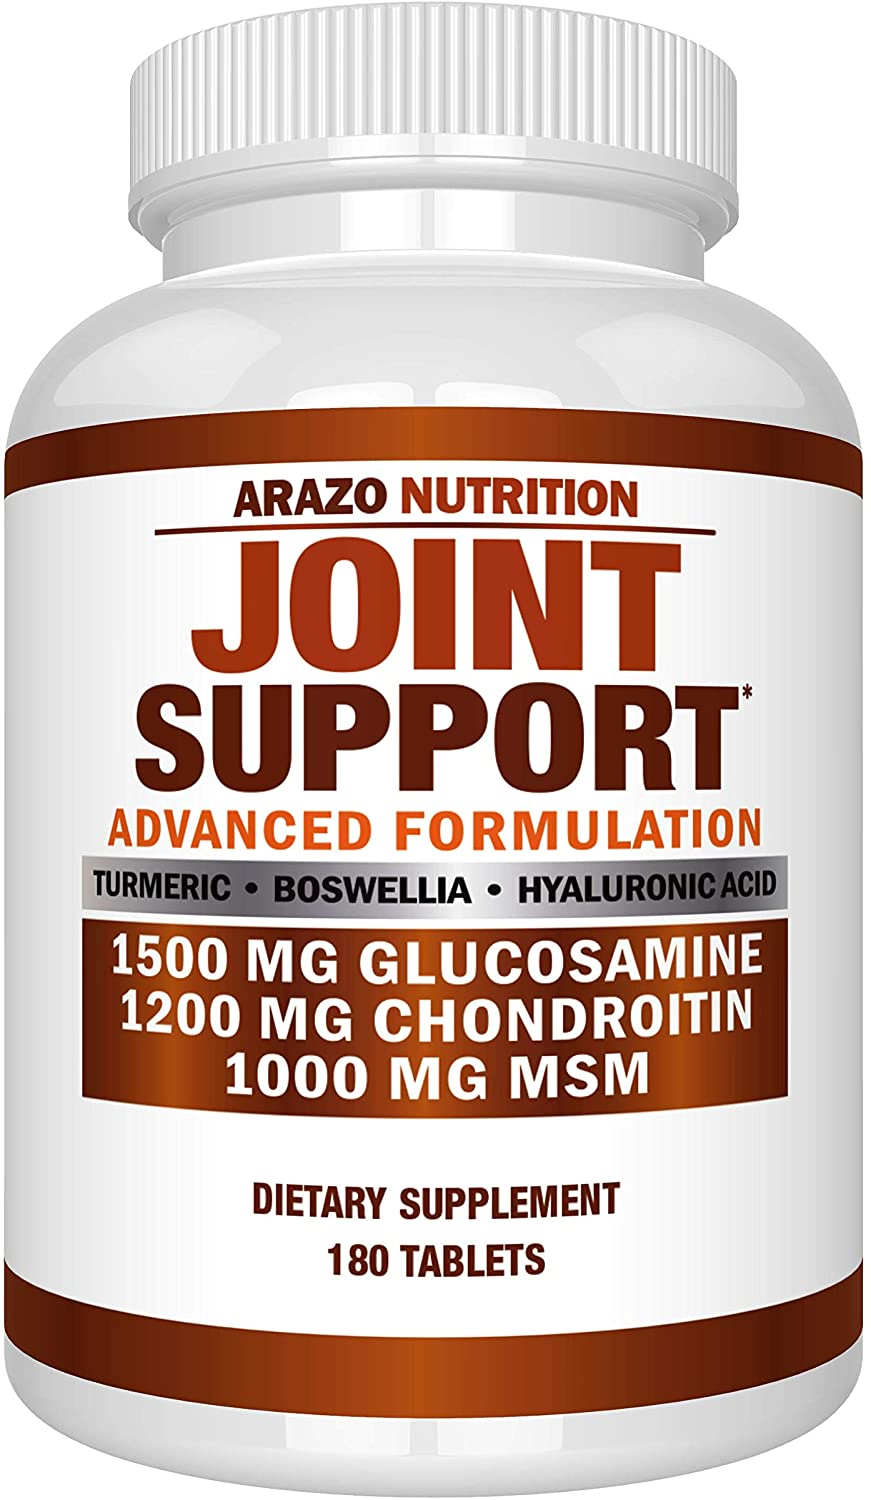 Review of Arazo Nutrition Joint Support Supplement - with Glucosamine, Chondroitin, Turmeric, Msm, Boswellia